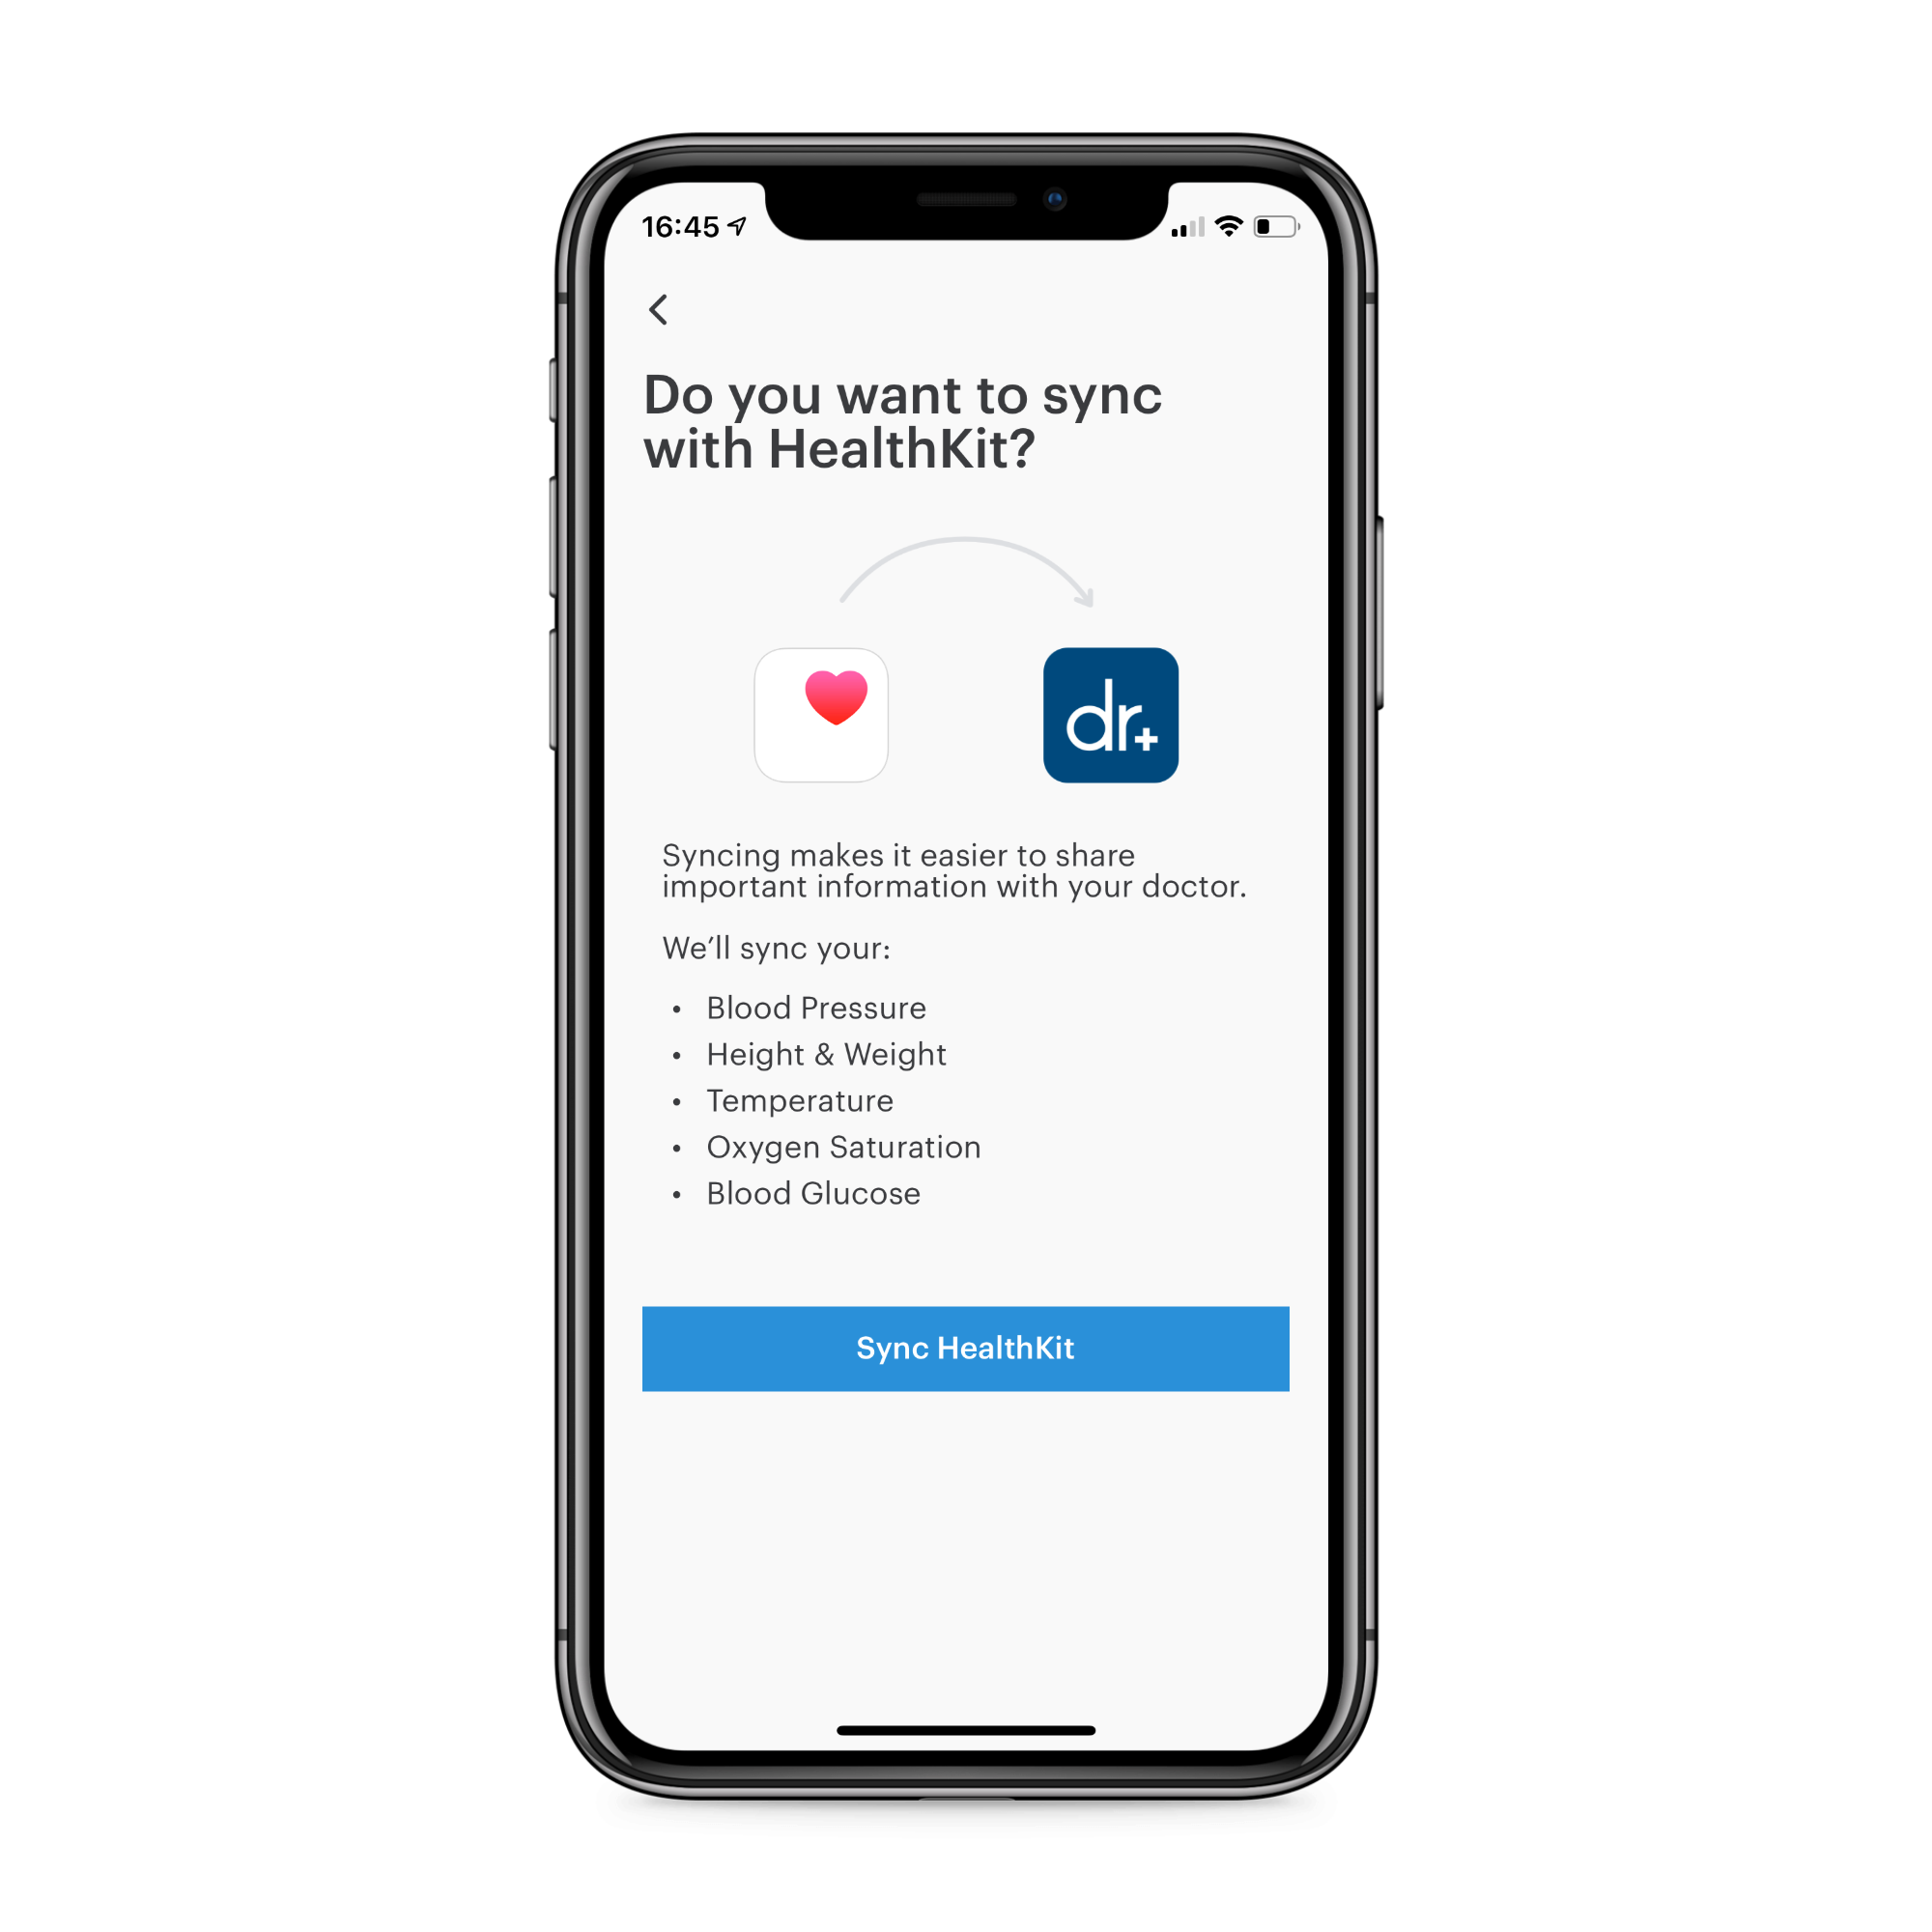 Patient's app: integration with eHealth apps